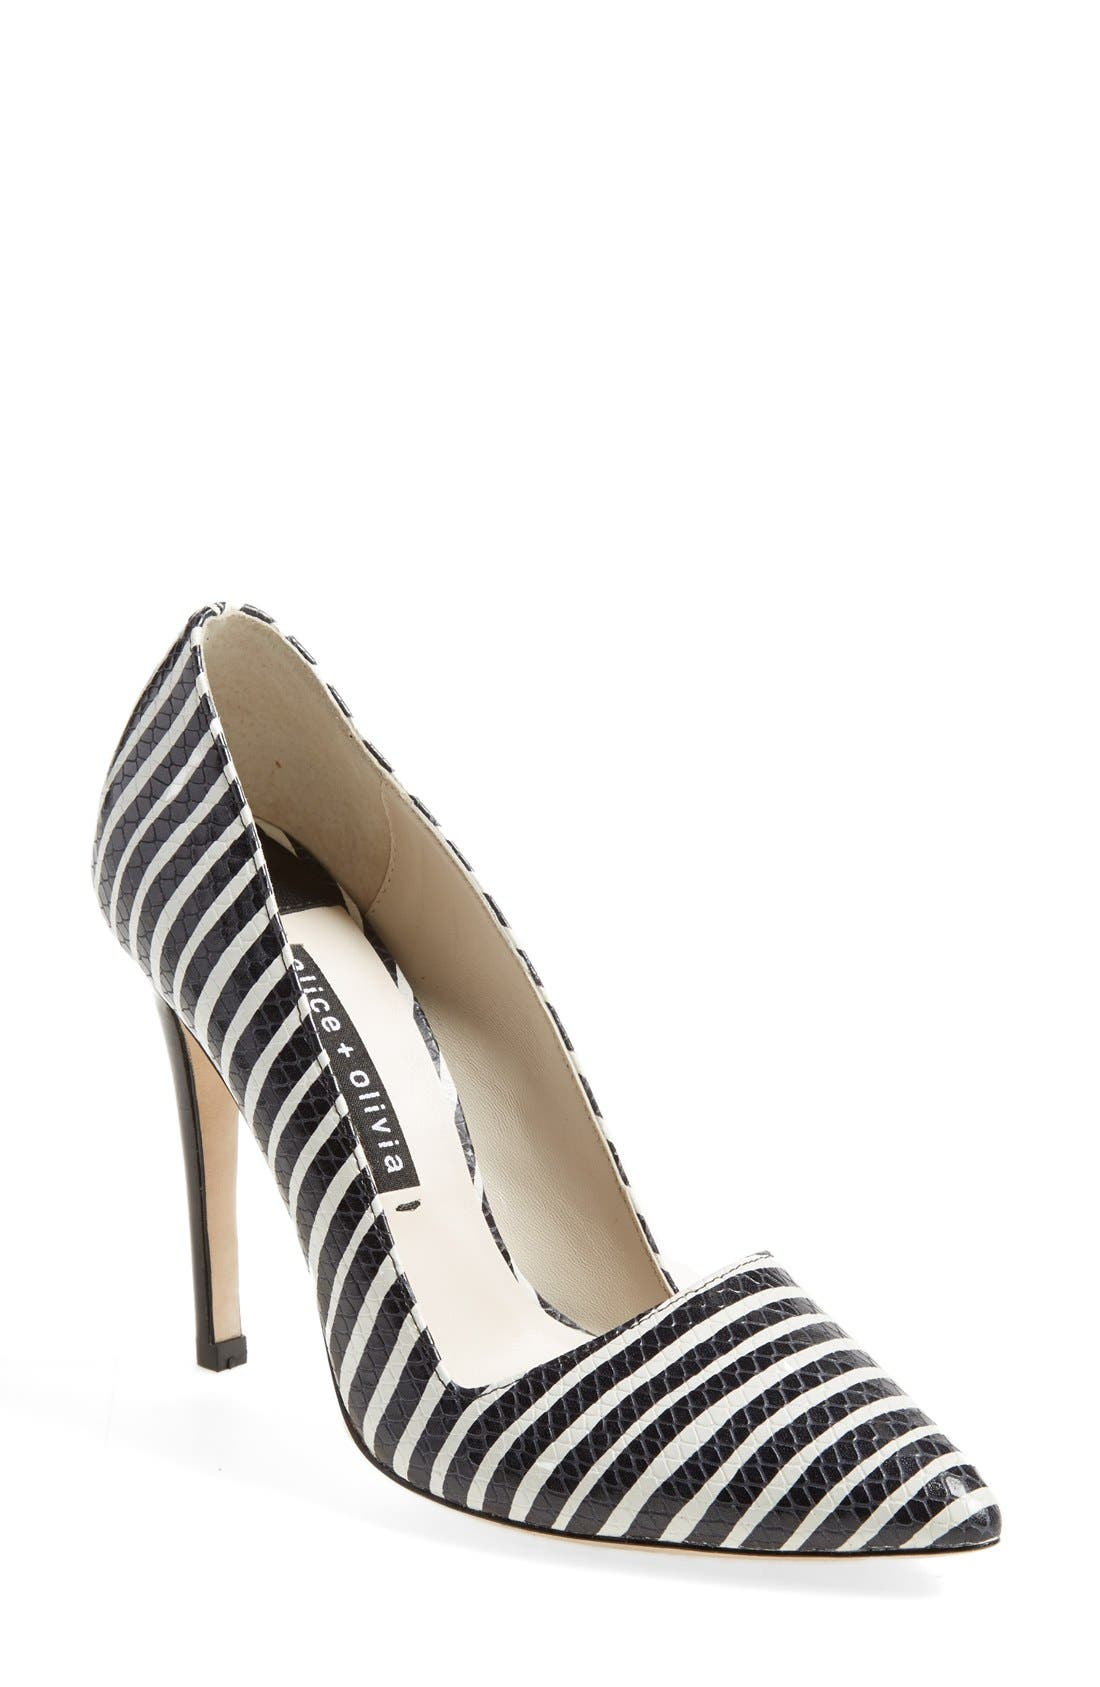 Main Image - Alice + Olivia 'Dina' Pointy Toe Pump (Women)